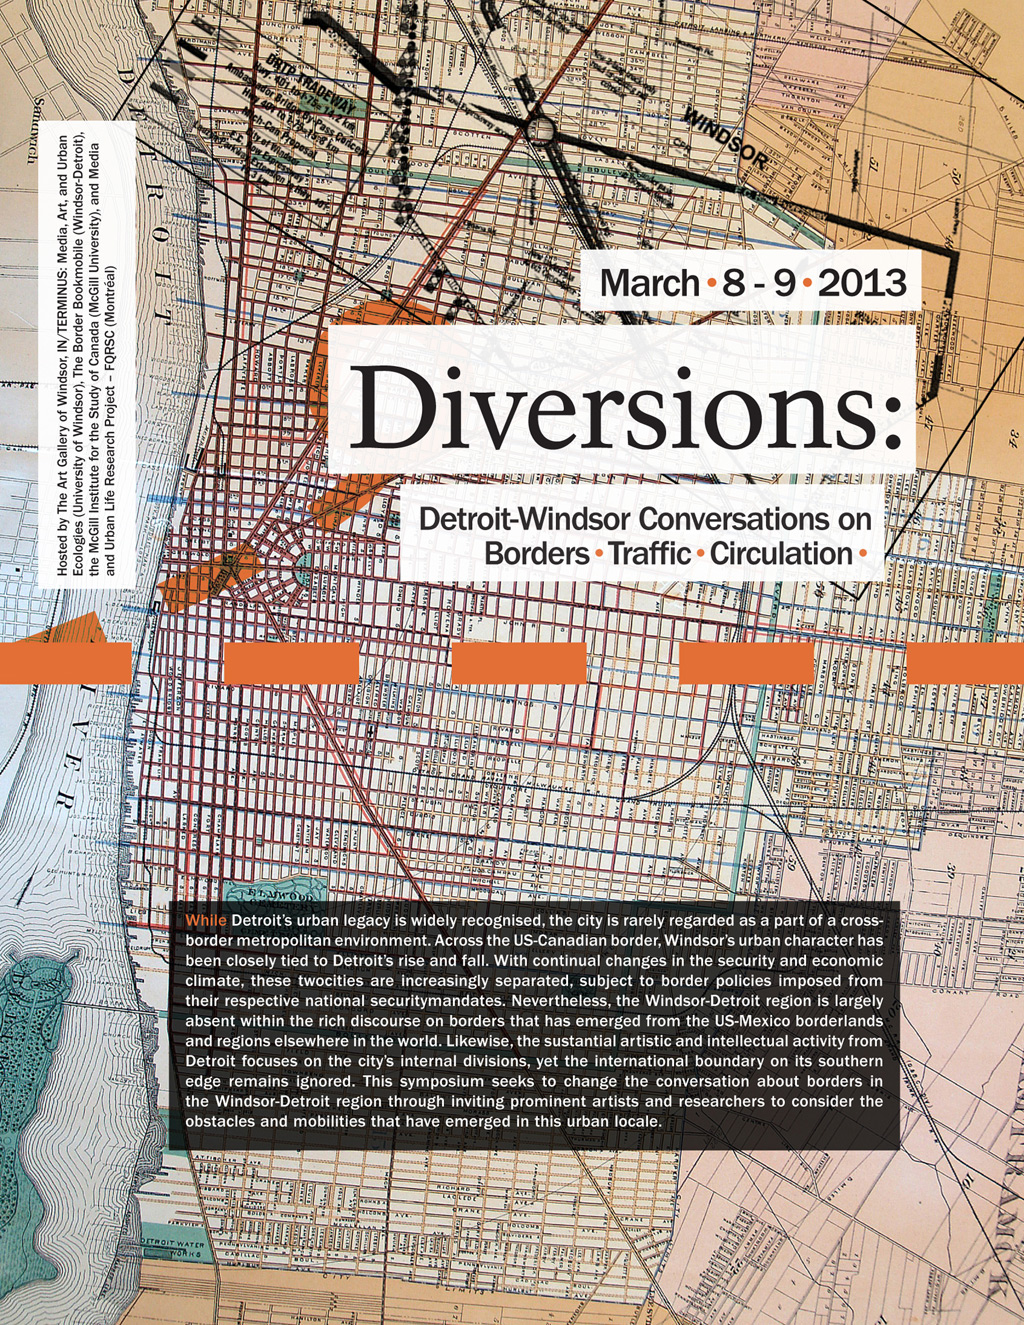 Diversions: Detroit-Windsor Conversations on Borders, Traffic and Circulation